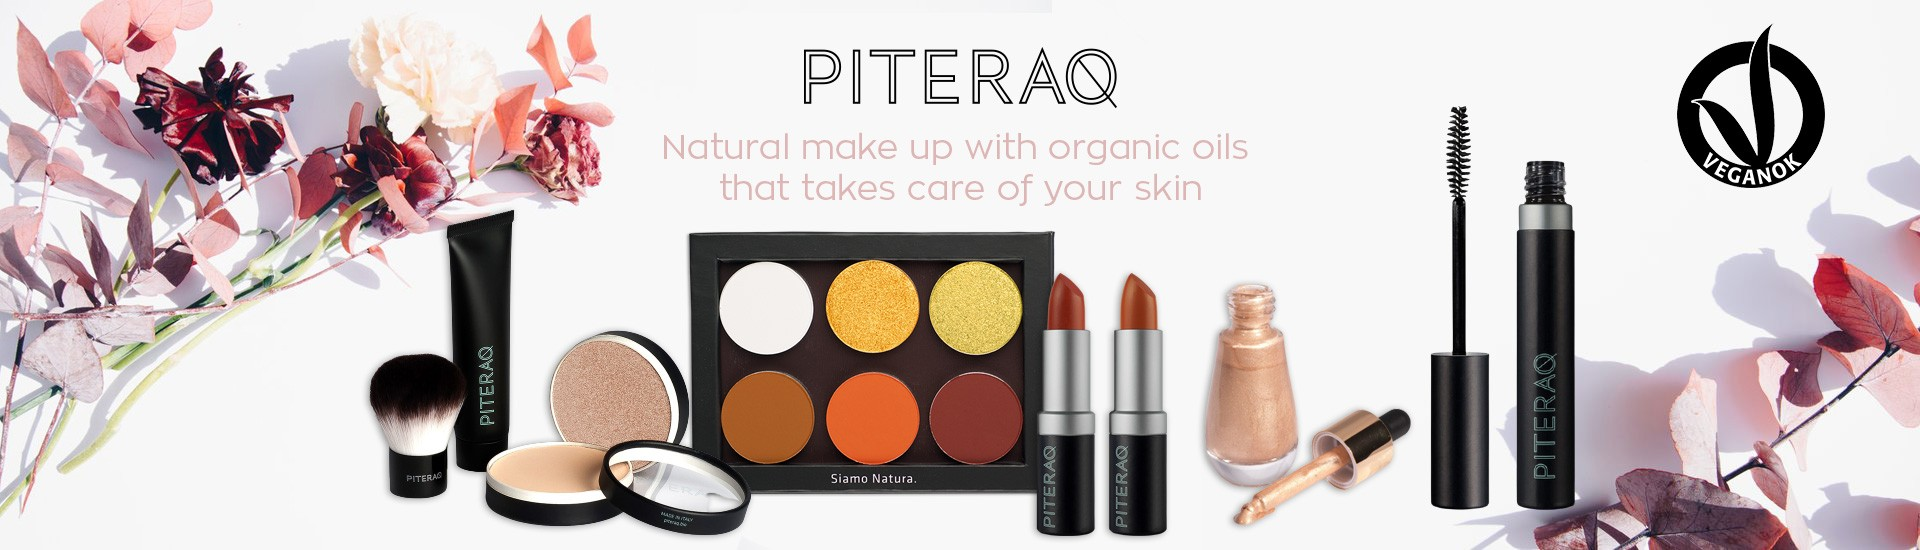 Piteraq Natural make up with organic oils that takes care of your skin